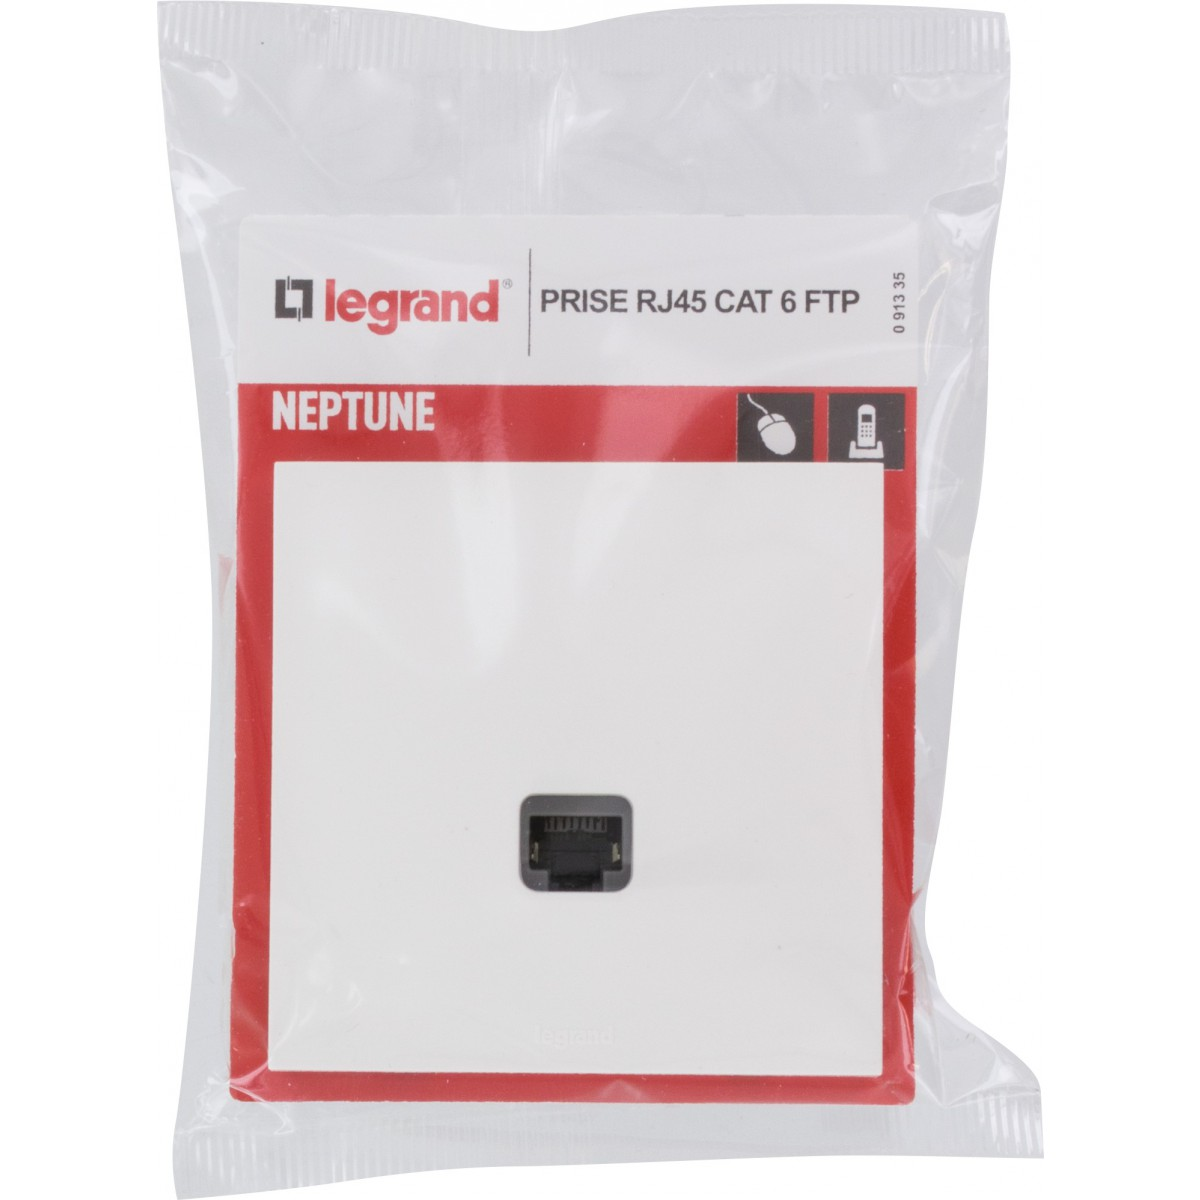 Prise RJ 45 multimédia cat. 6 FTP Legrand - Neptune - Blanc